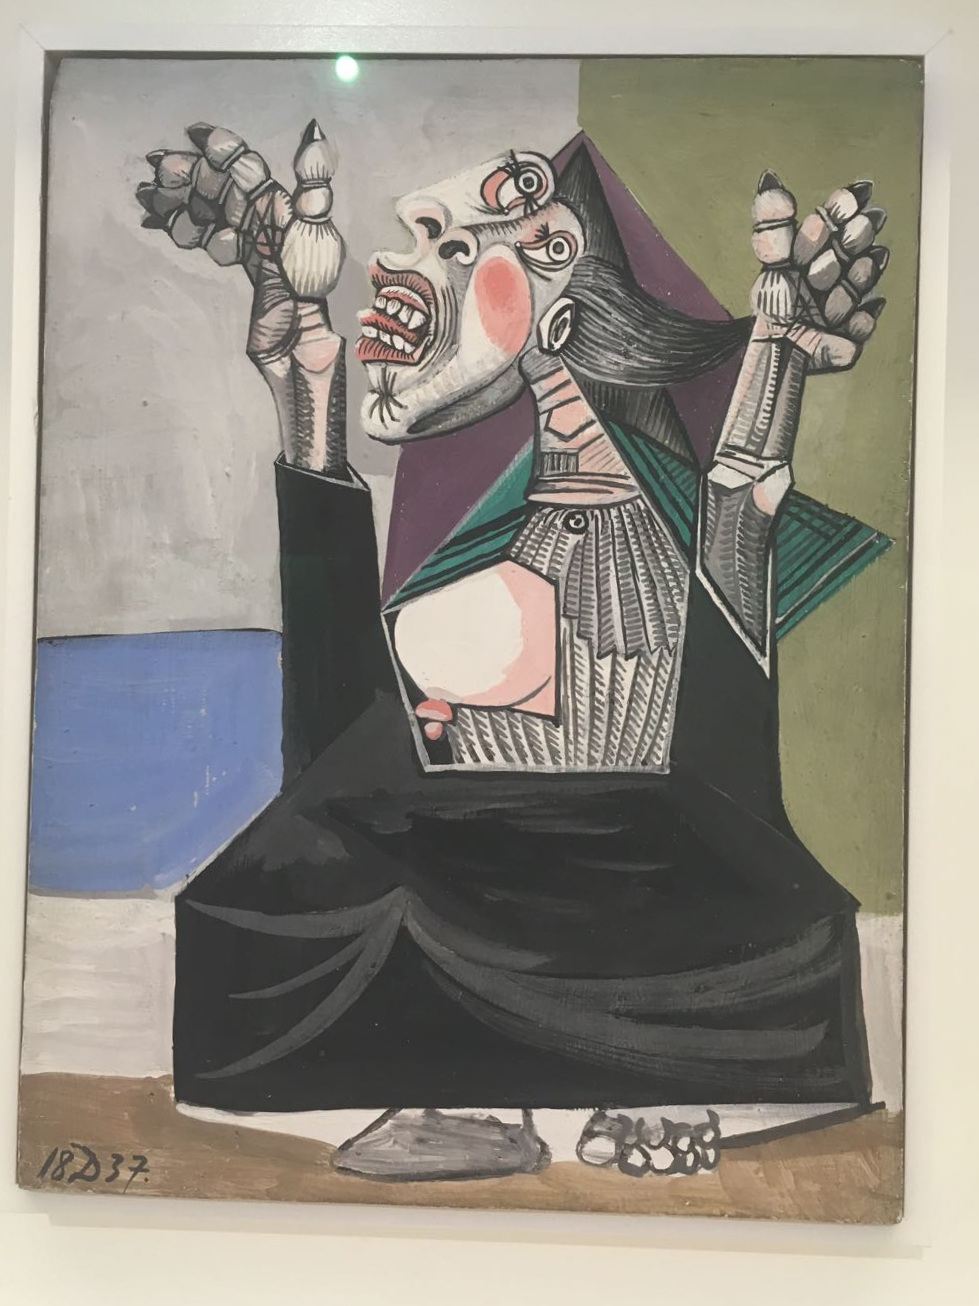 Am I the only one who feels like the chaos and confusion of 'adulting' is captured perfectly in this Picasso piece?